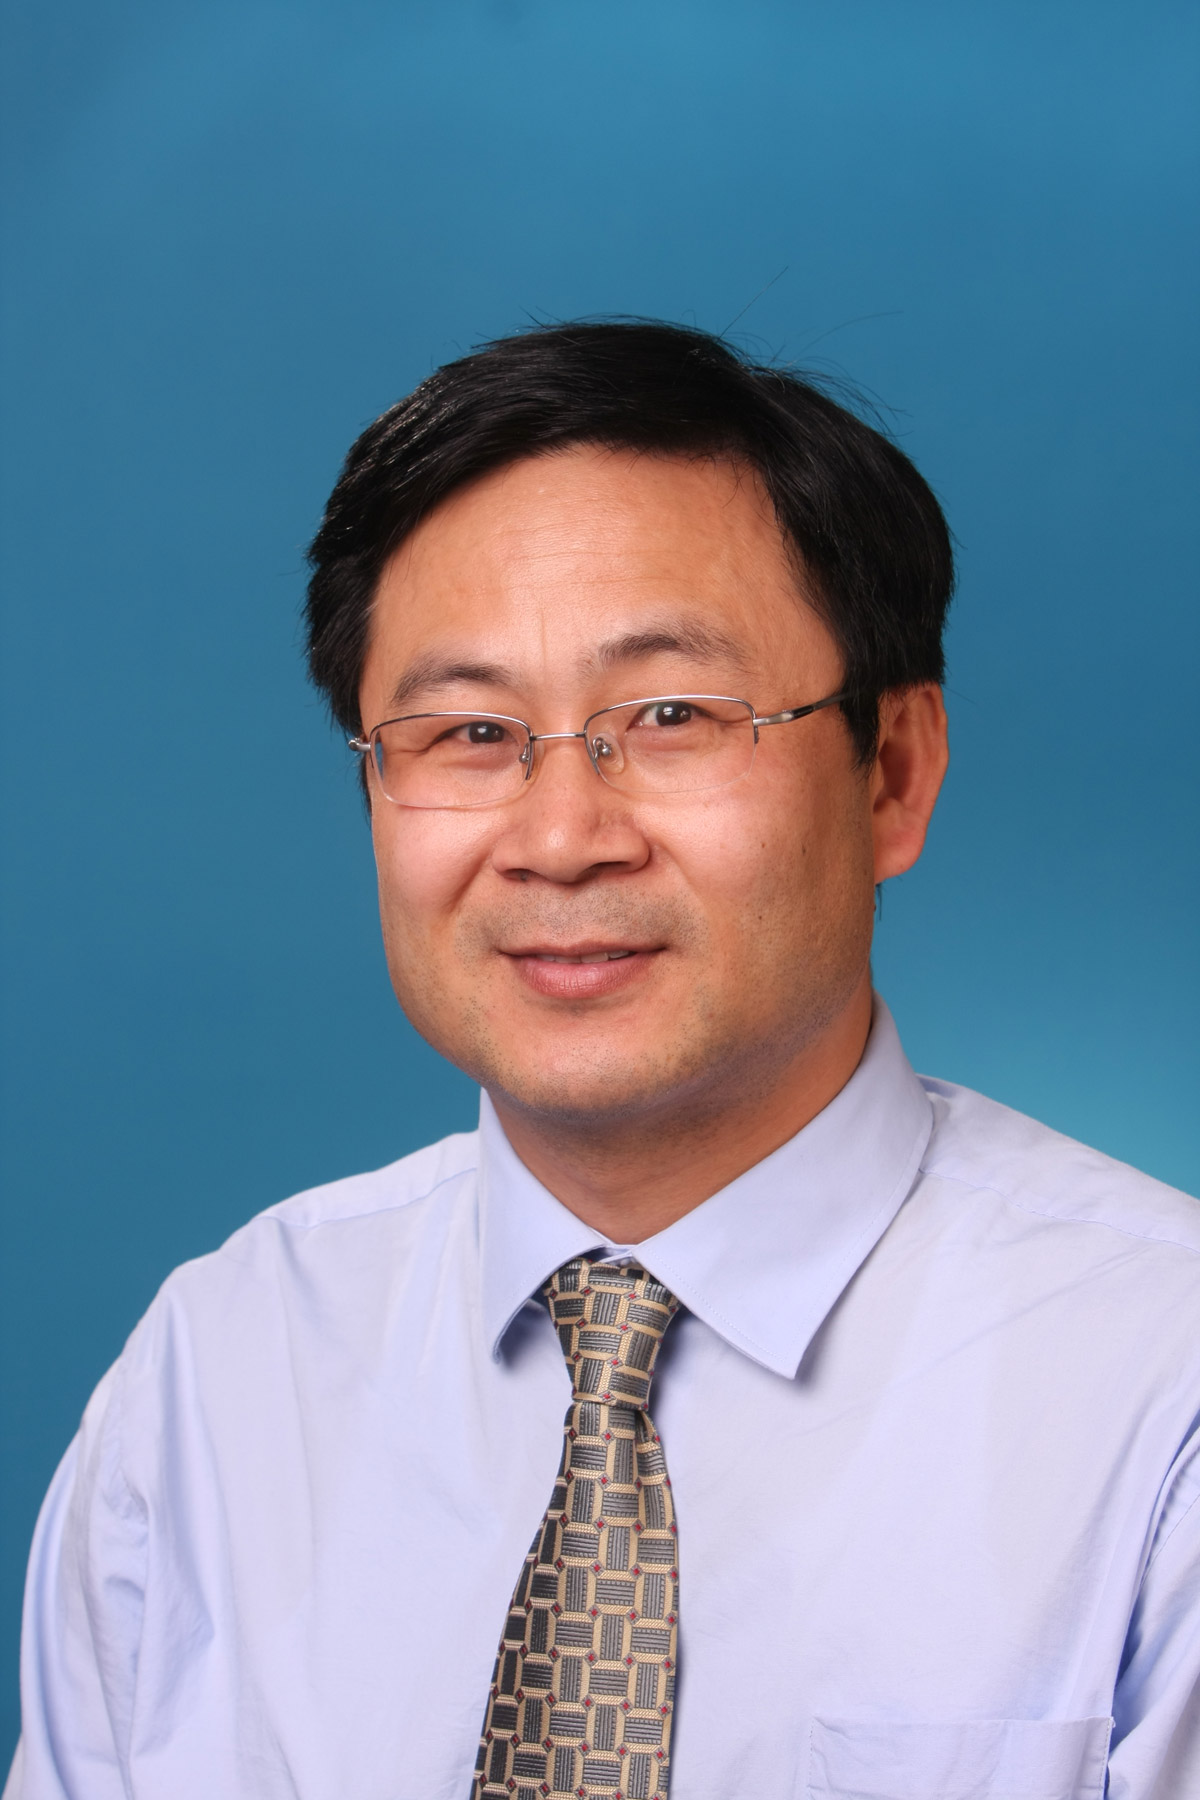 A photo of Jianqiang Wu.